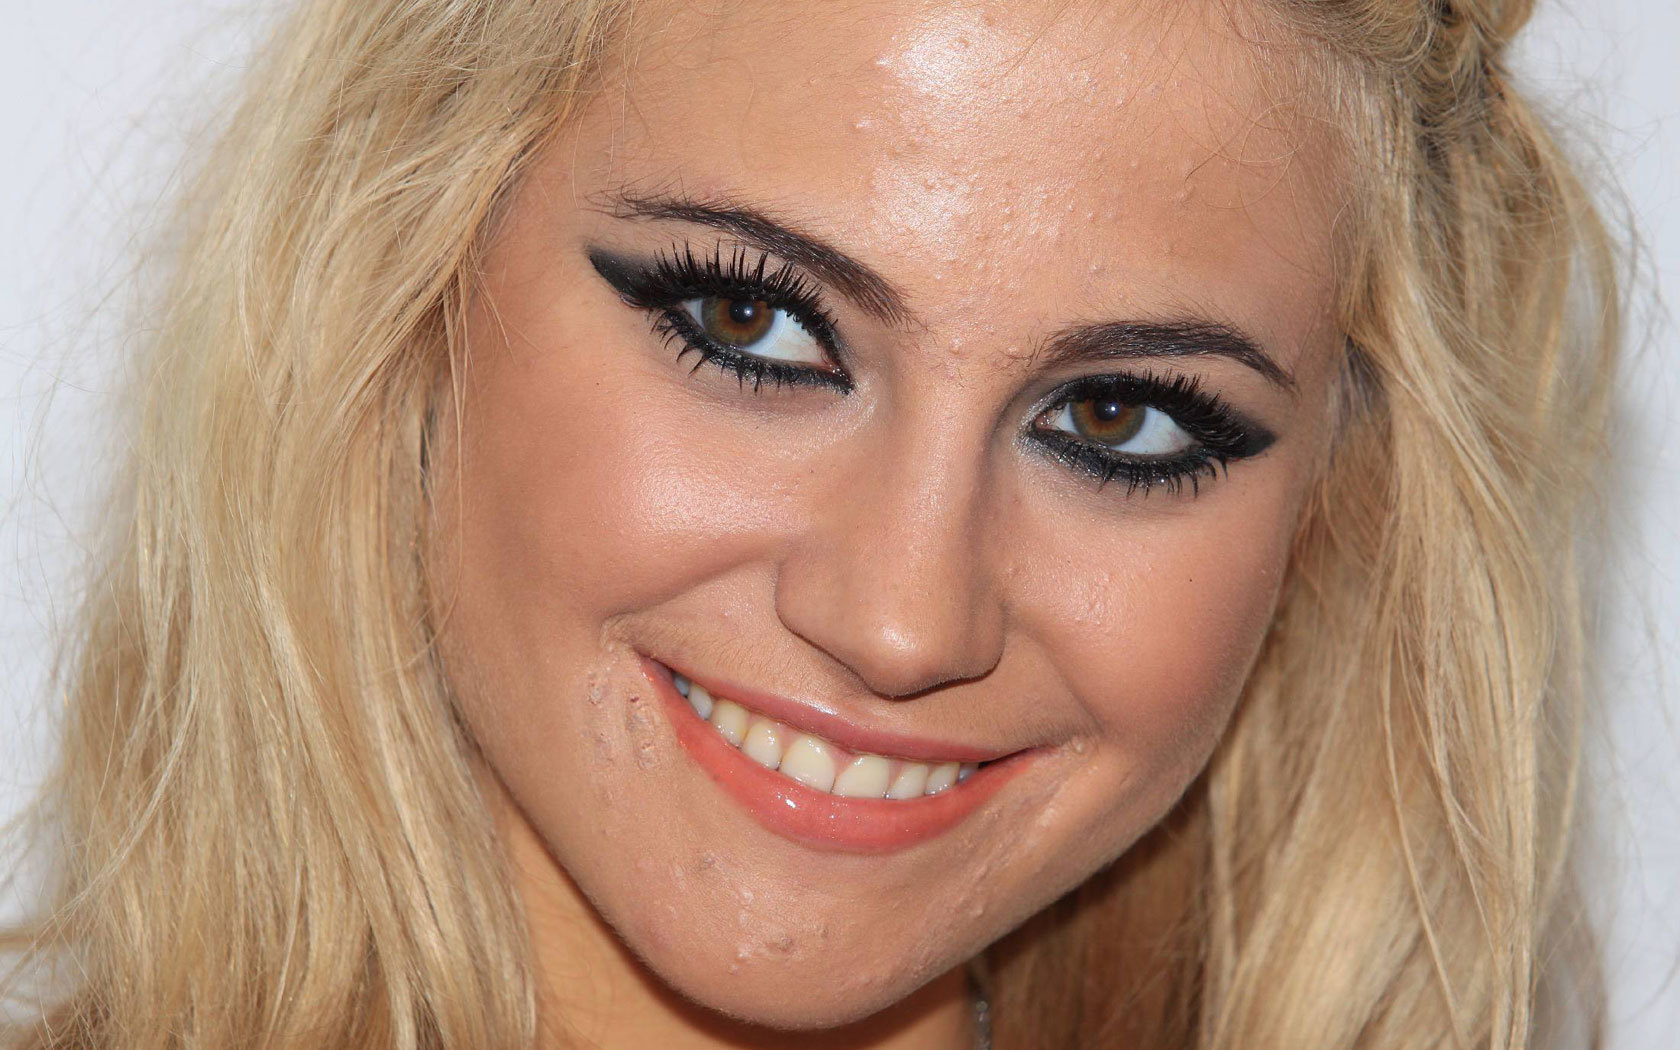 smile makeup blond Actress close up